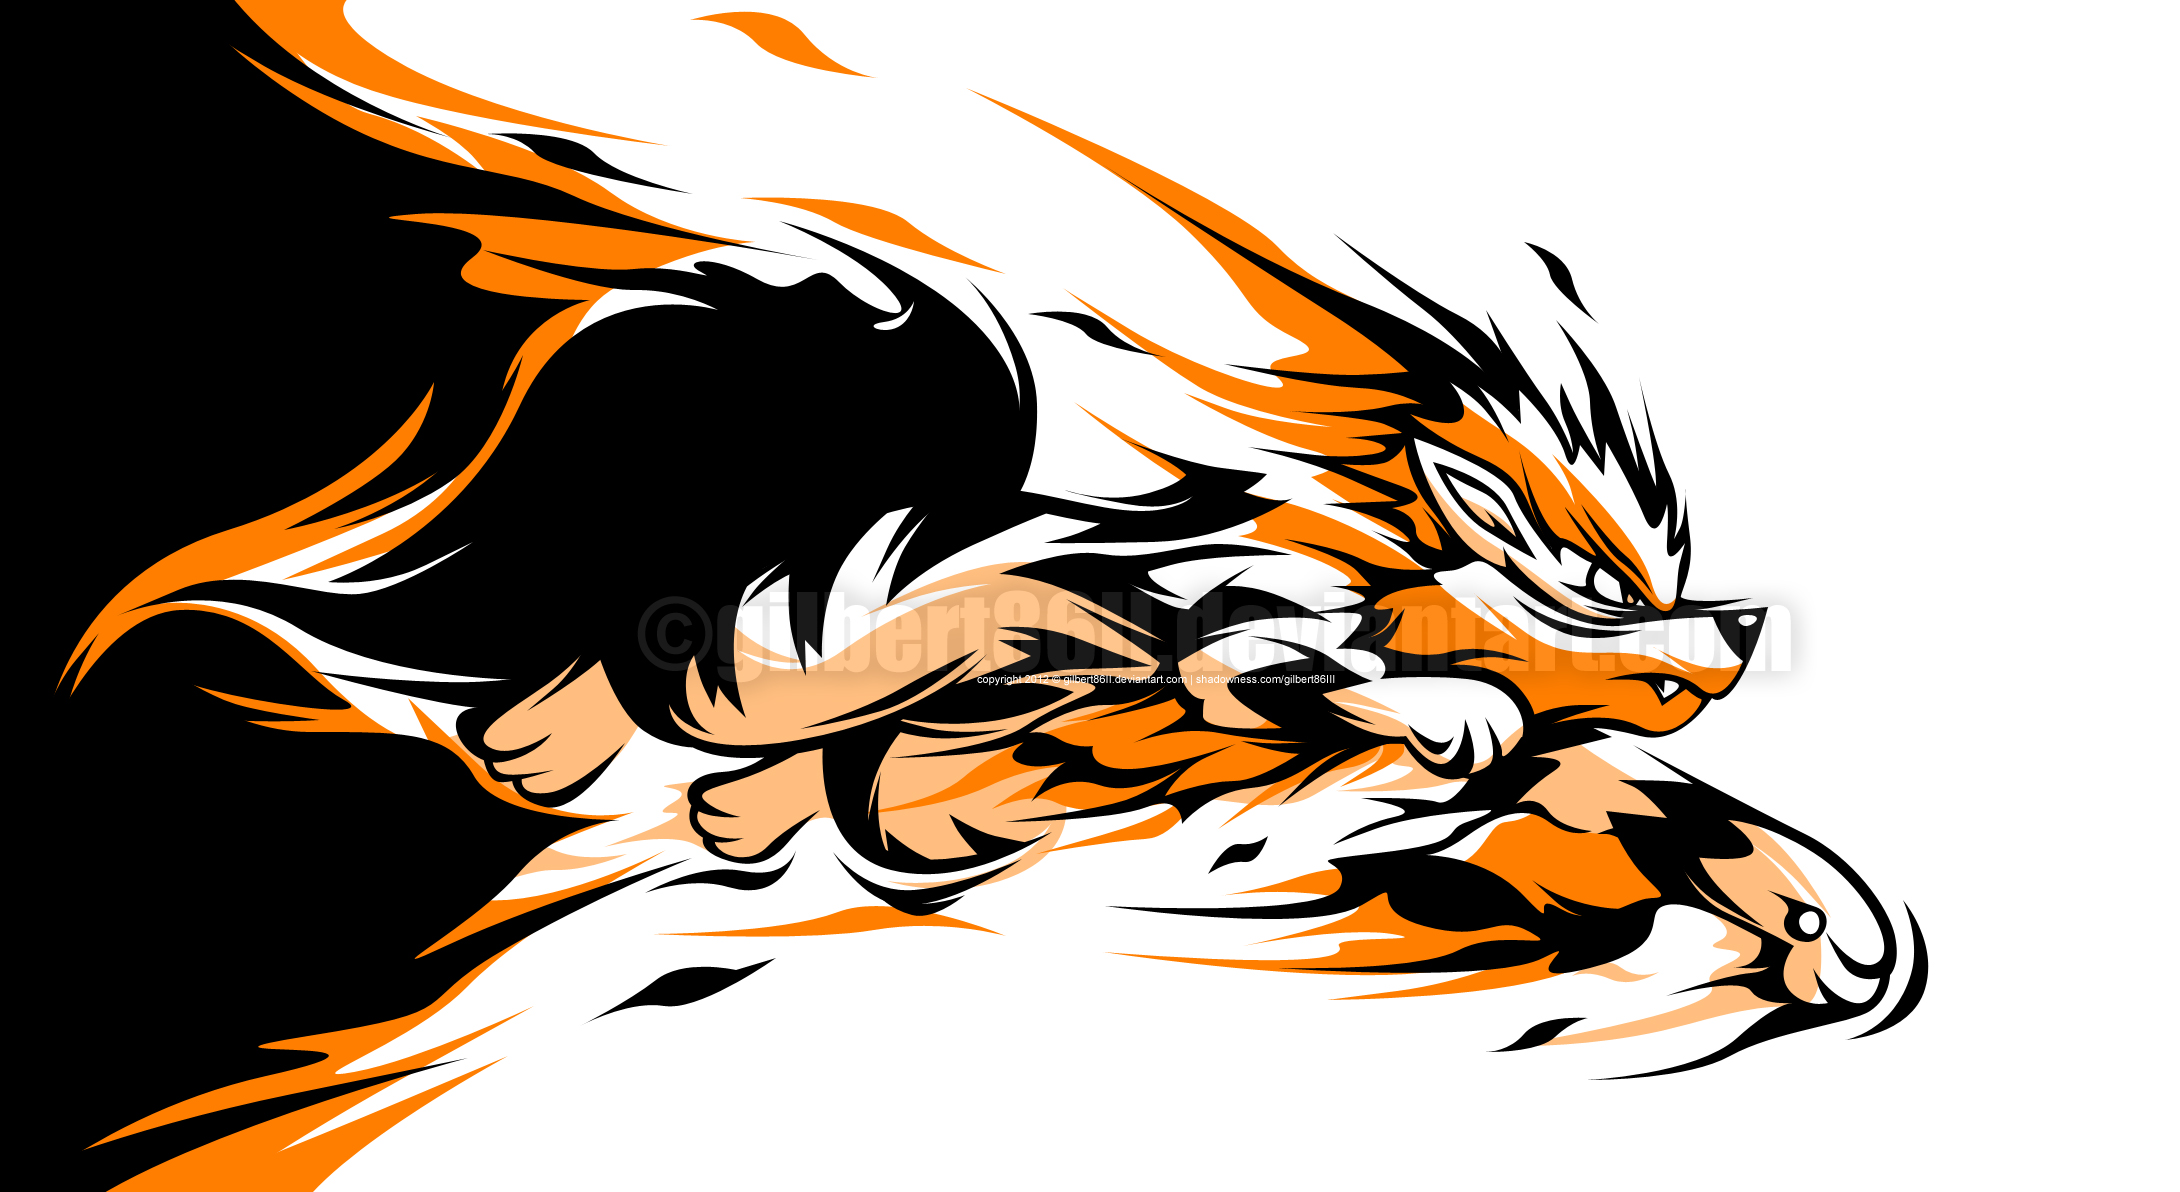 arcanine's flame by gilbert86II on DeviantArt